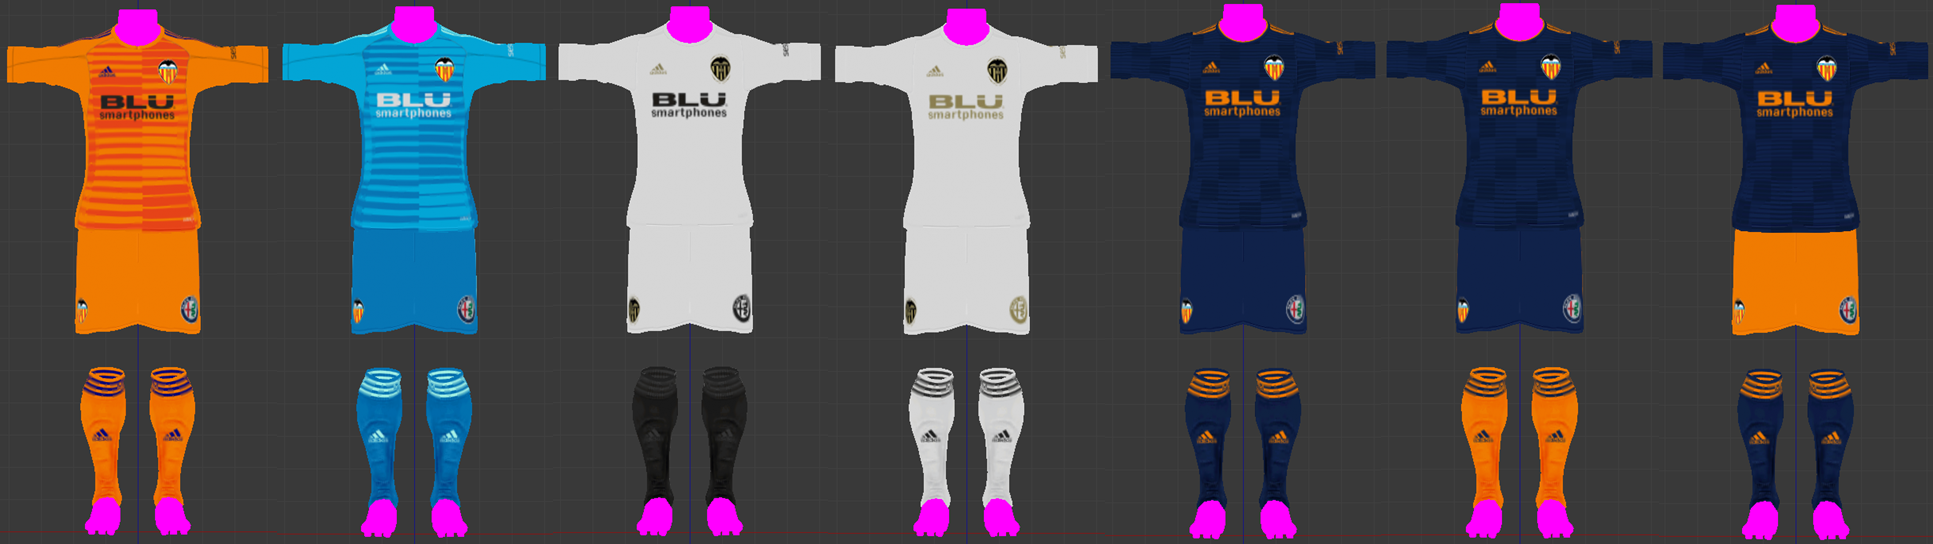 vcf1819.png